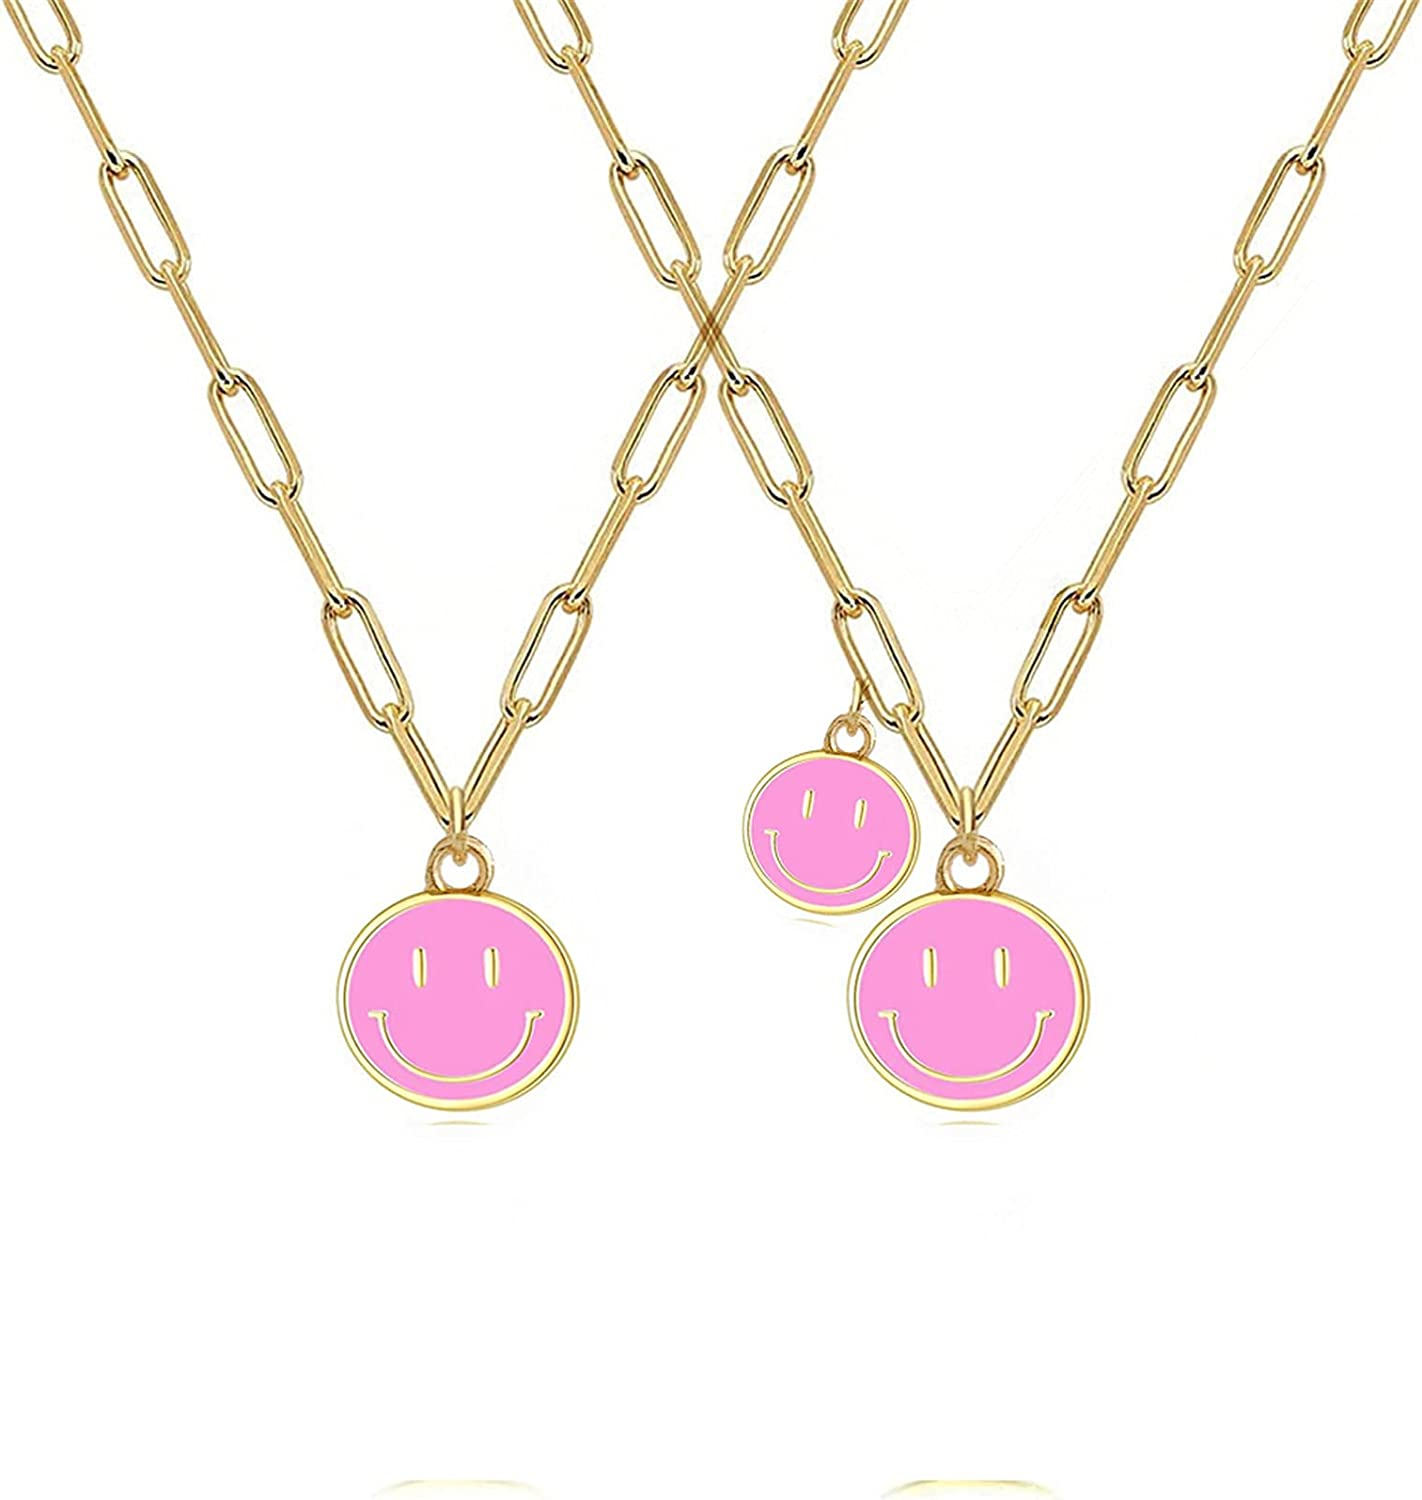 2 Pcs Colorful Happy Face Choker Lovely Smile Pendant Paperclip Chain Necklace Friendship Couple Necklace Jewelry Women Girls